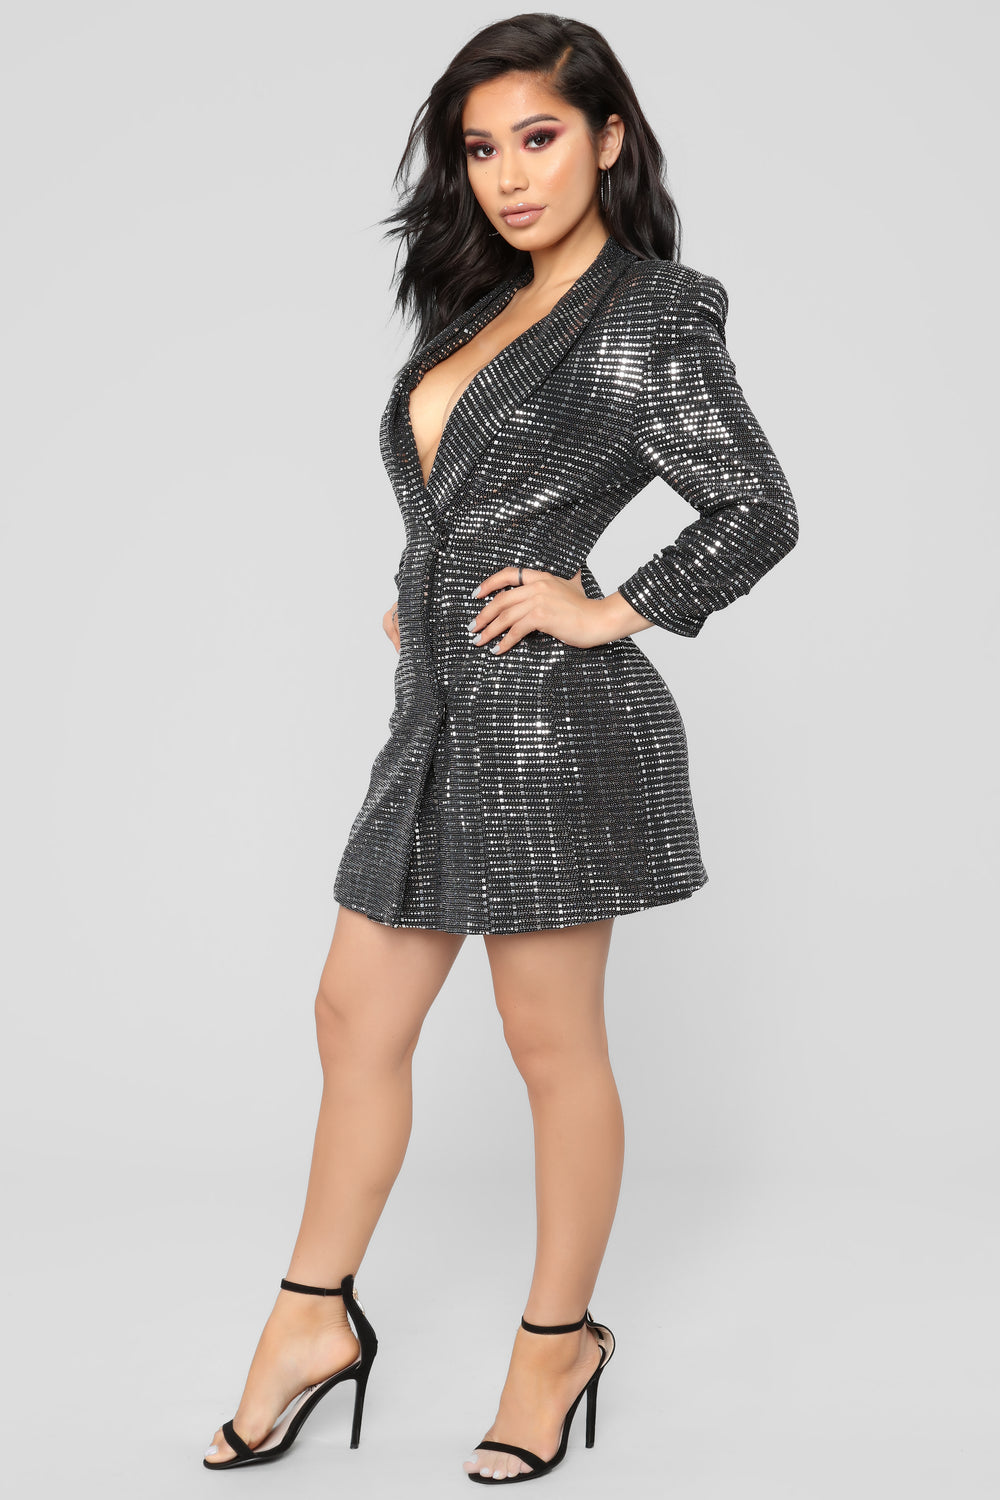 Dying To Know My Name Dress - Silver